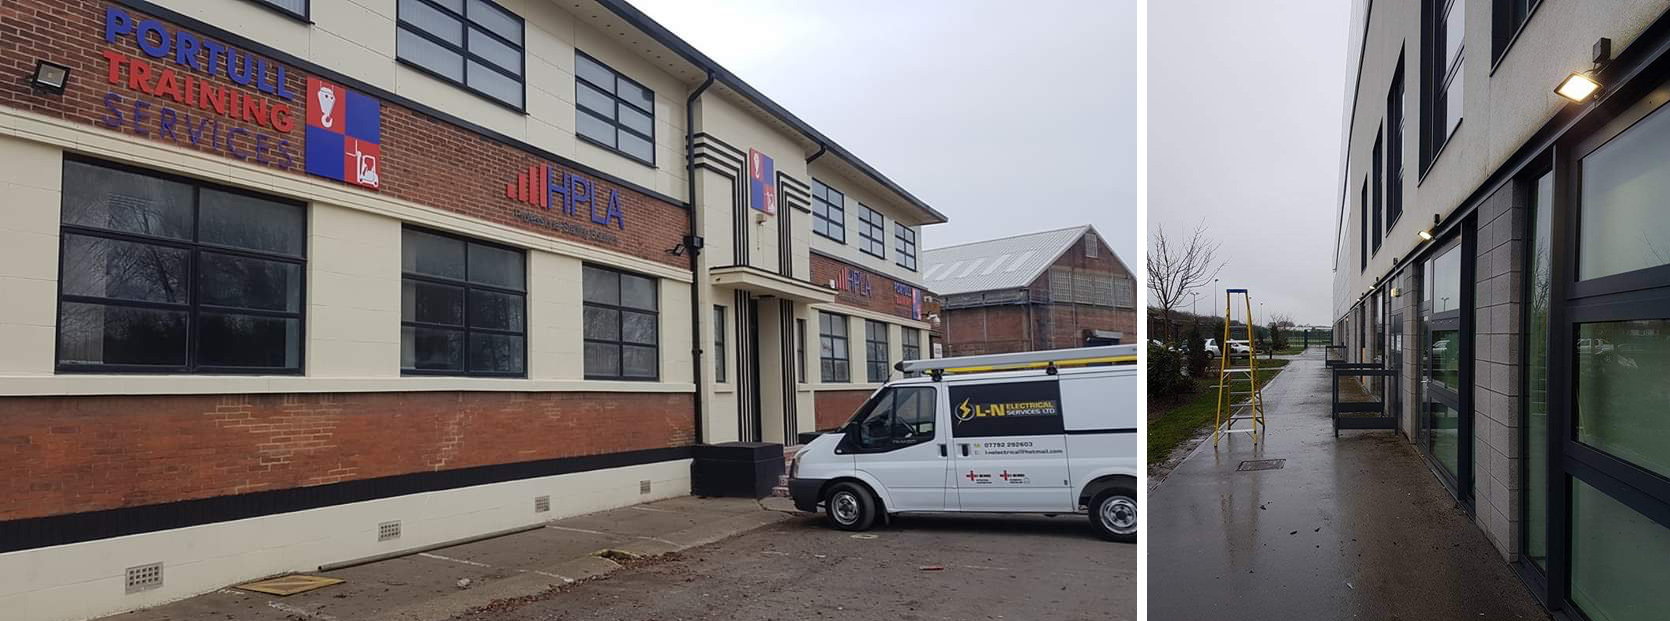 Commercial Electrical Services in Hull